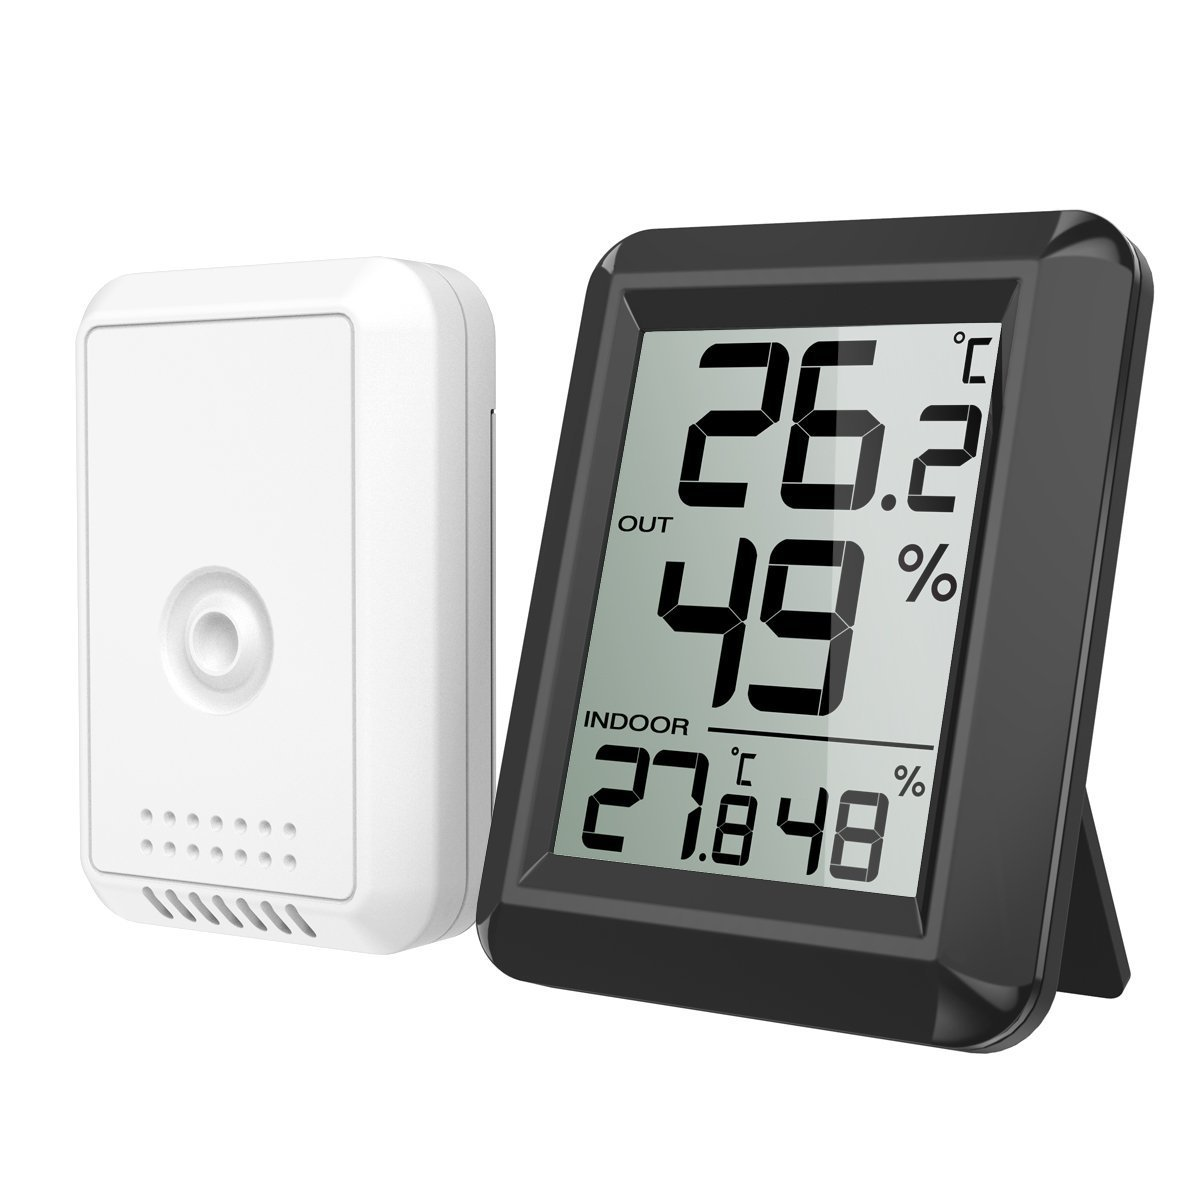 Oria Digital Thermometer Hygrometer, Indoor/Outdoor Humidity Meter, Temperature Monitor With Wireless Sensor, 328ft/100m Range, °C/°F Selectable, 60s Auto Refresh For Home, Office, Greenhouse etc.-Black